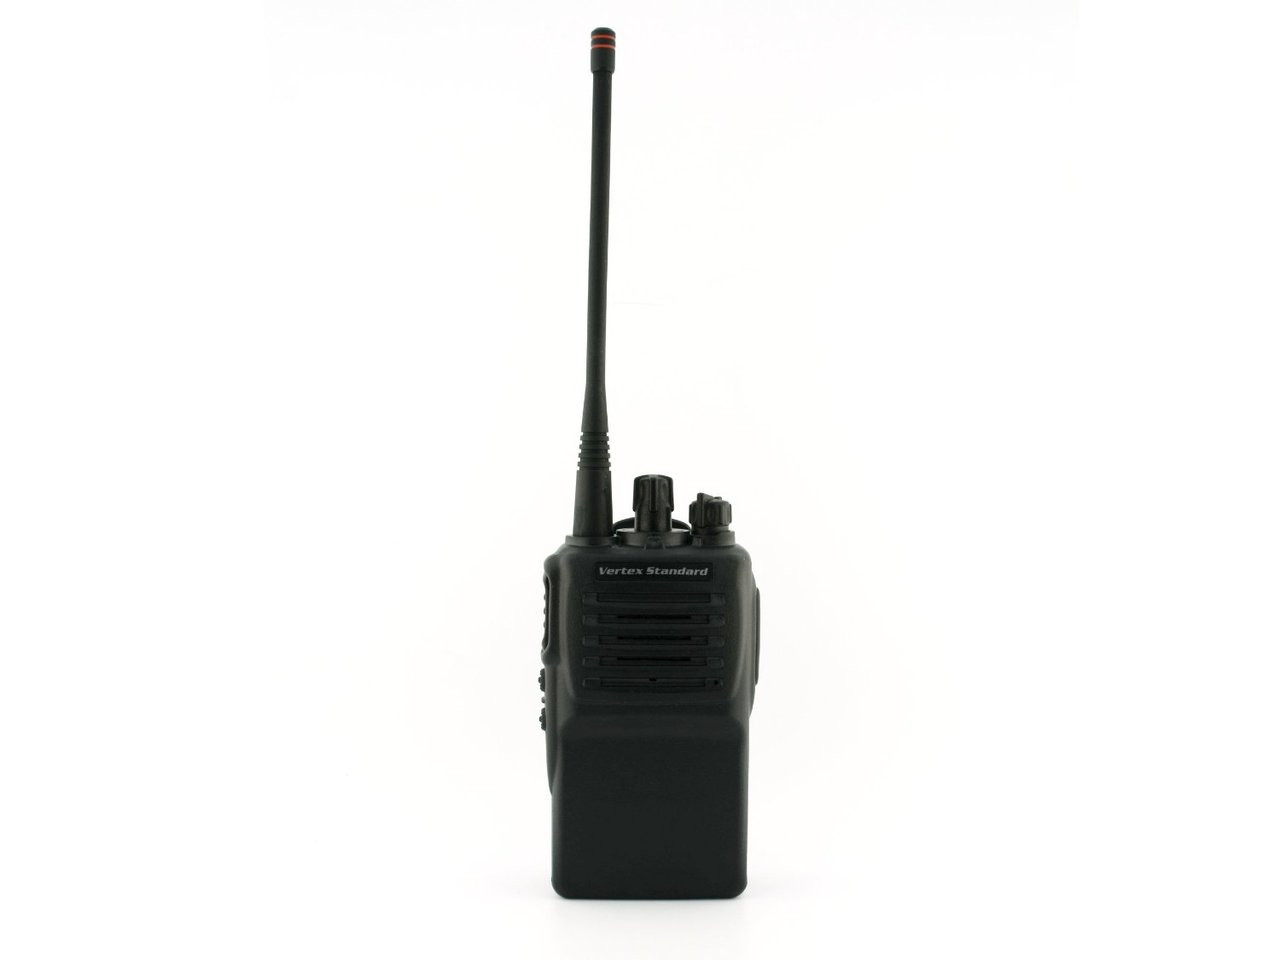 Vertex Standard VX-351 series two way radios come in UHF and VHF models.